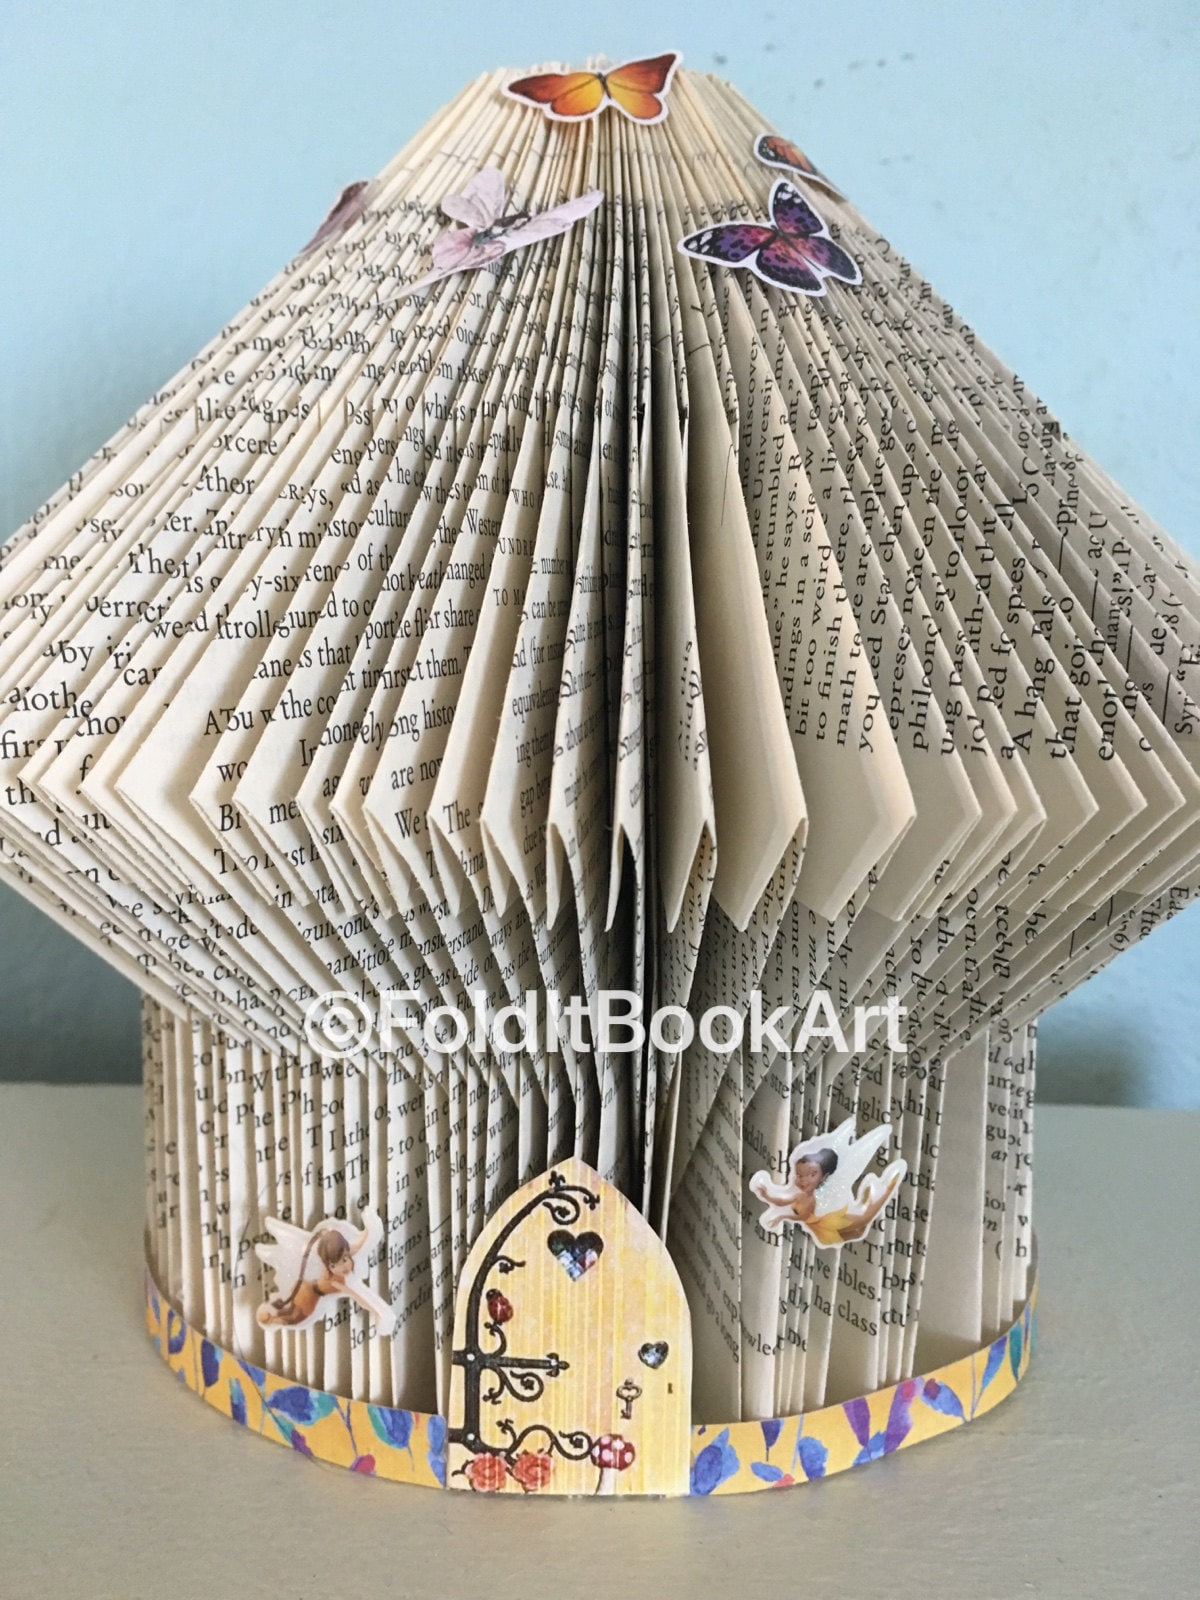 book art fairy house www topsimages com rh topsimages com Fairy Templates for Cardboard Houses Fairy House Made Out of Book